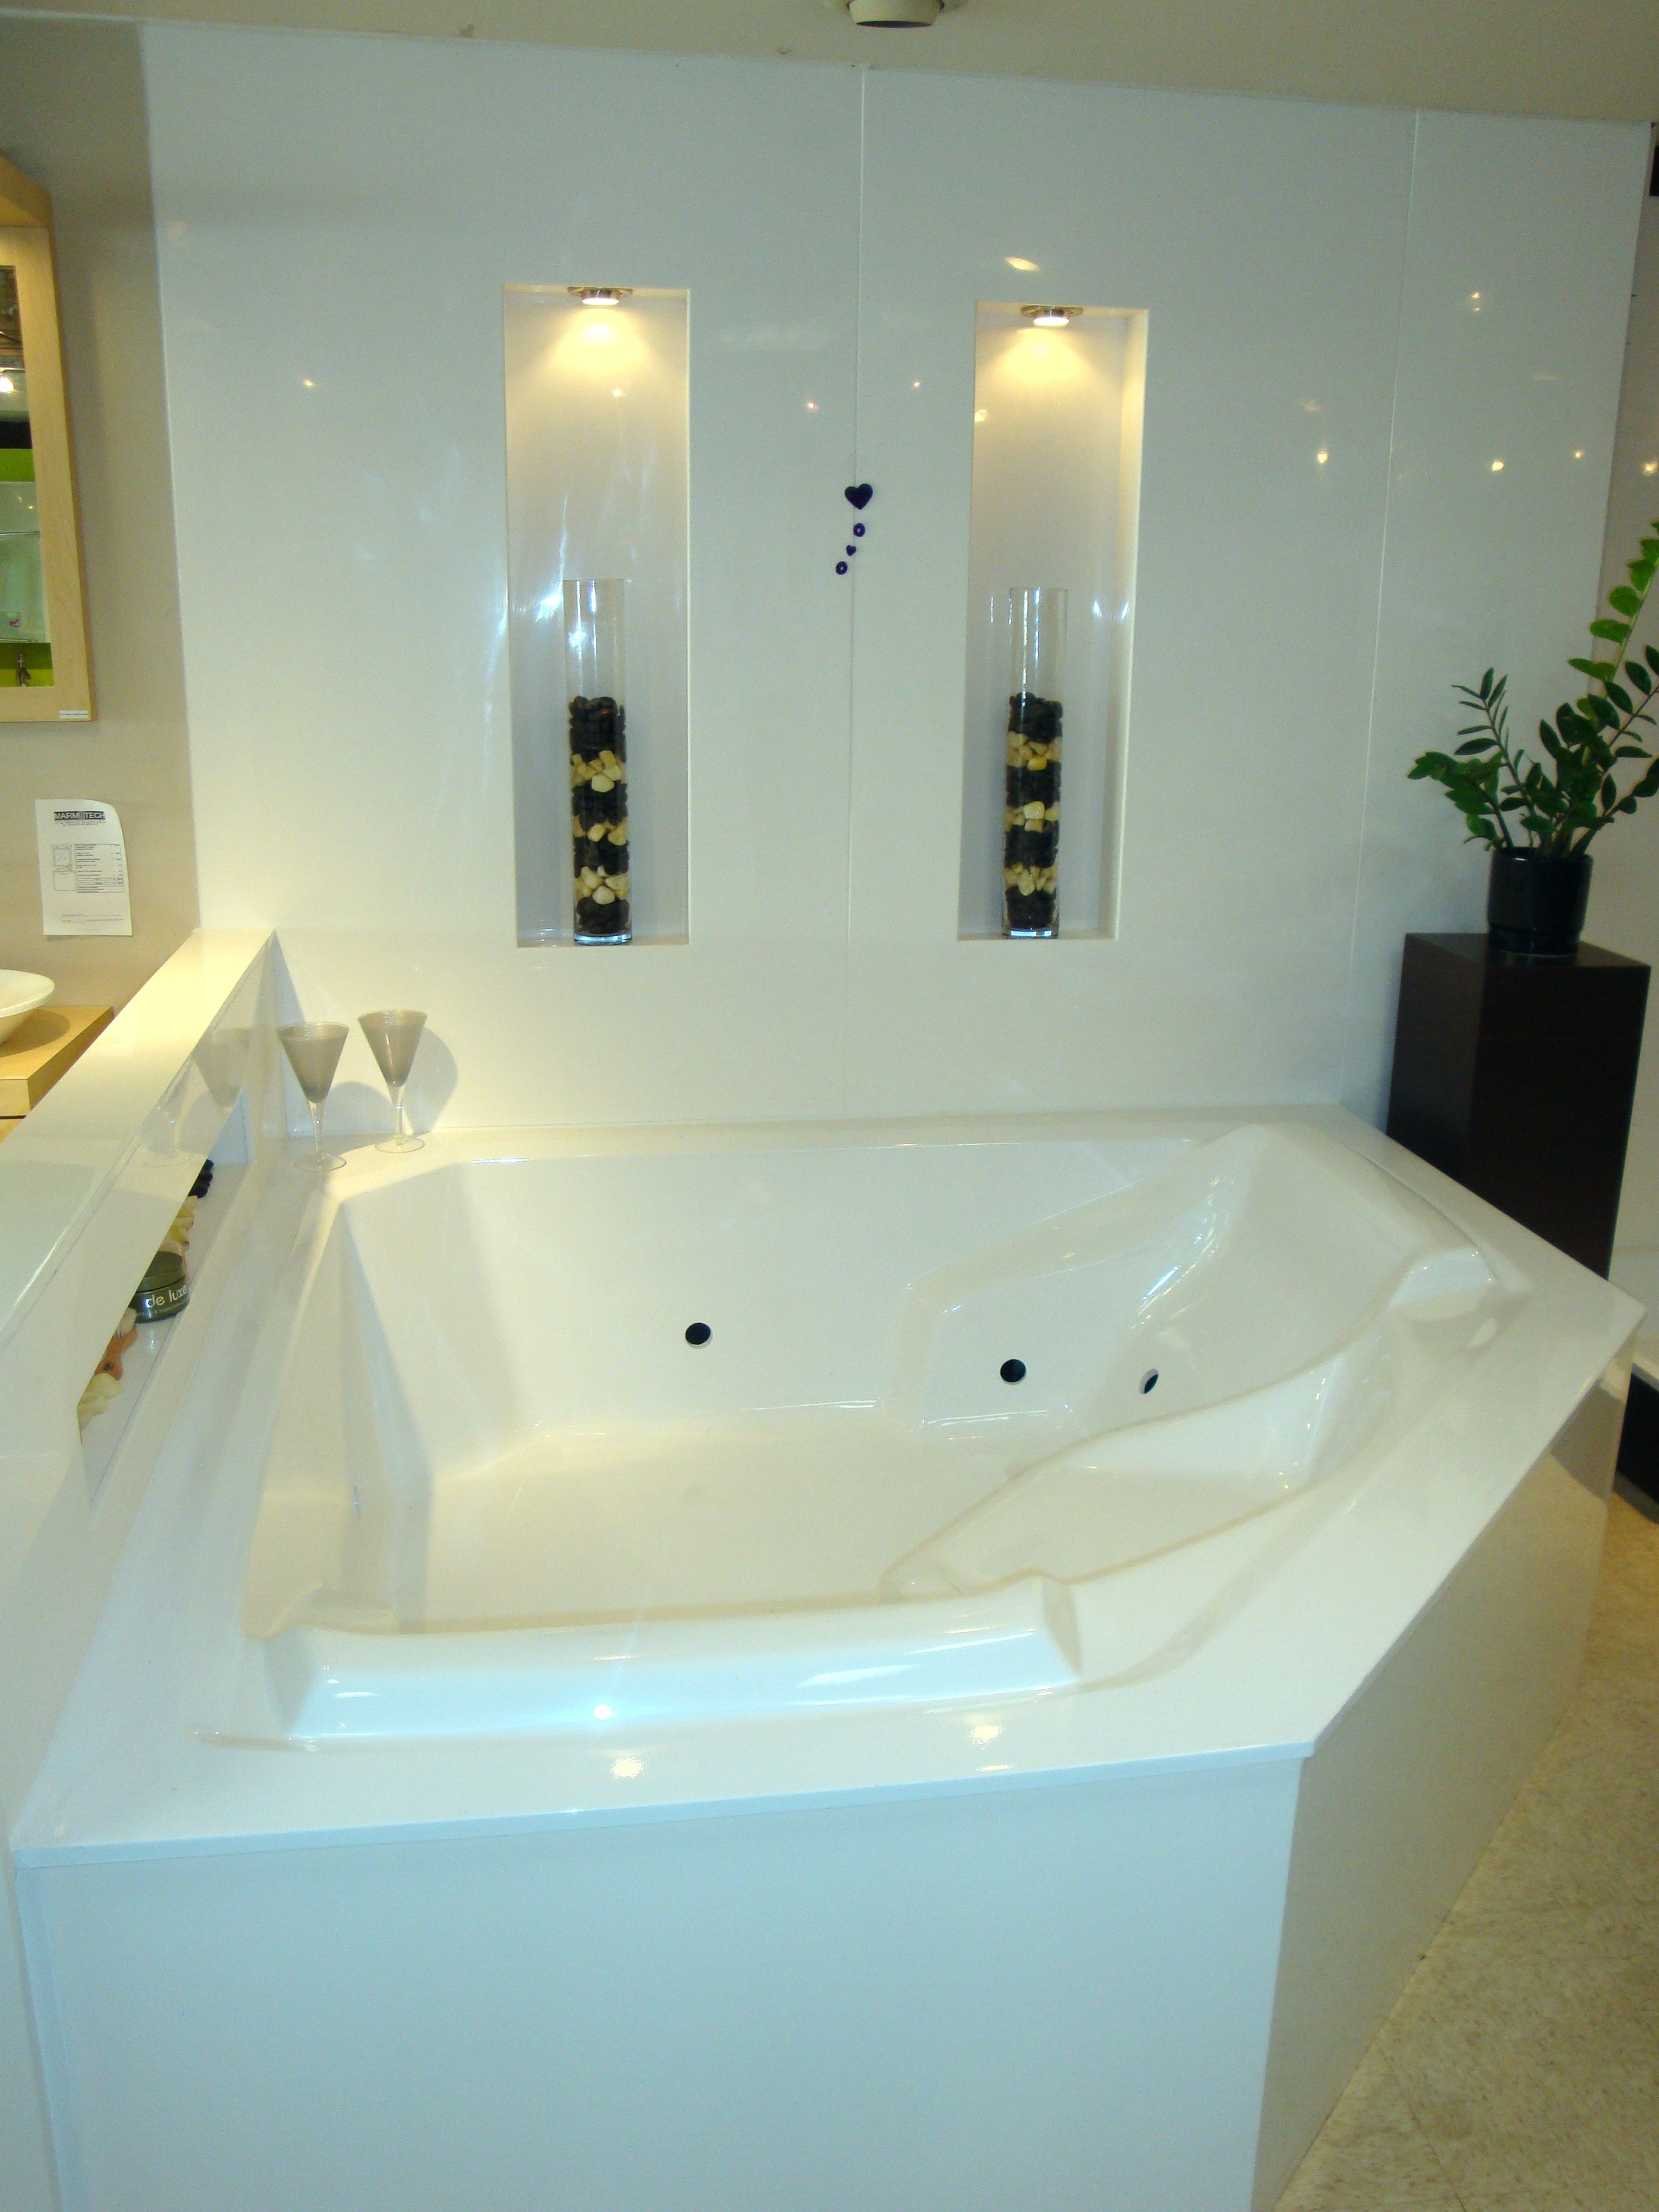 Great Size And Good Looking Cultured Marble Tub How To Look Better